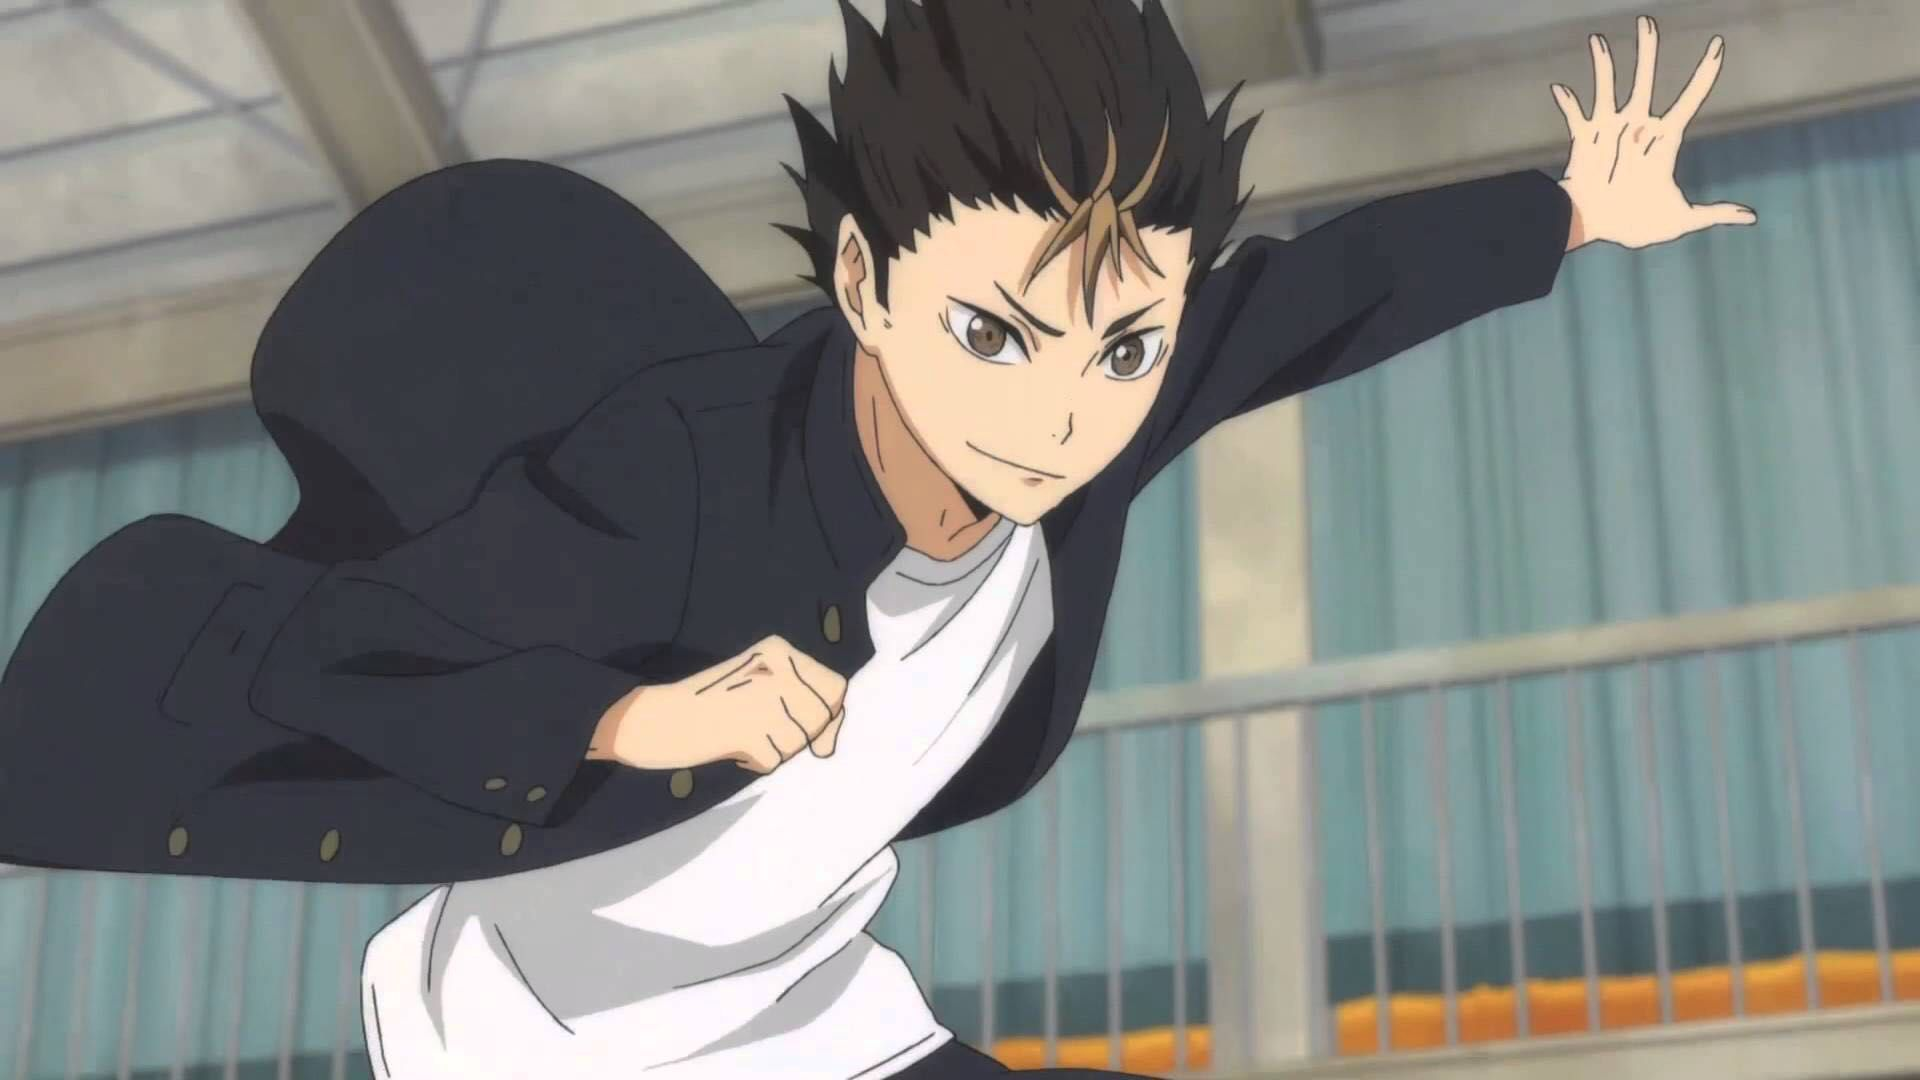 Pin By Tsuyoi This Isn T My Real Nam On Haikyuuuu Nishinoya Nishinoya Yuu Haikyuu Nishinoya